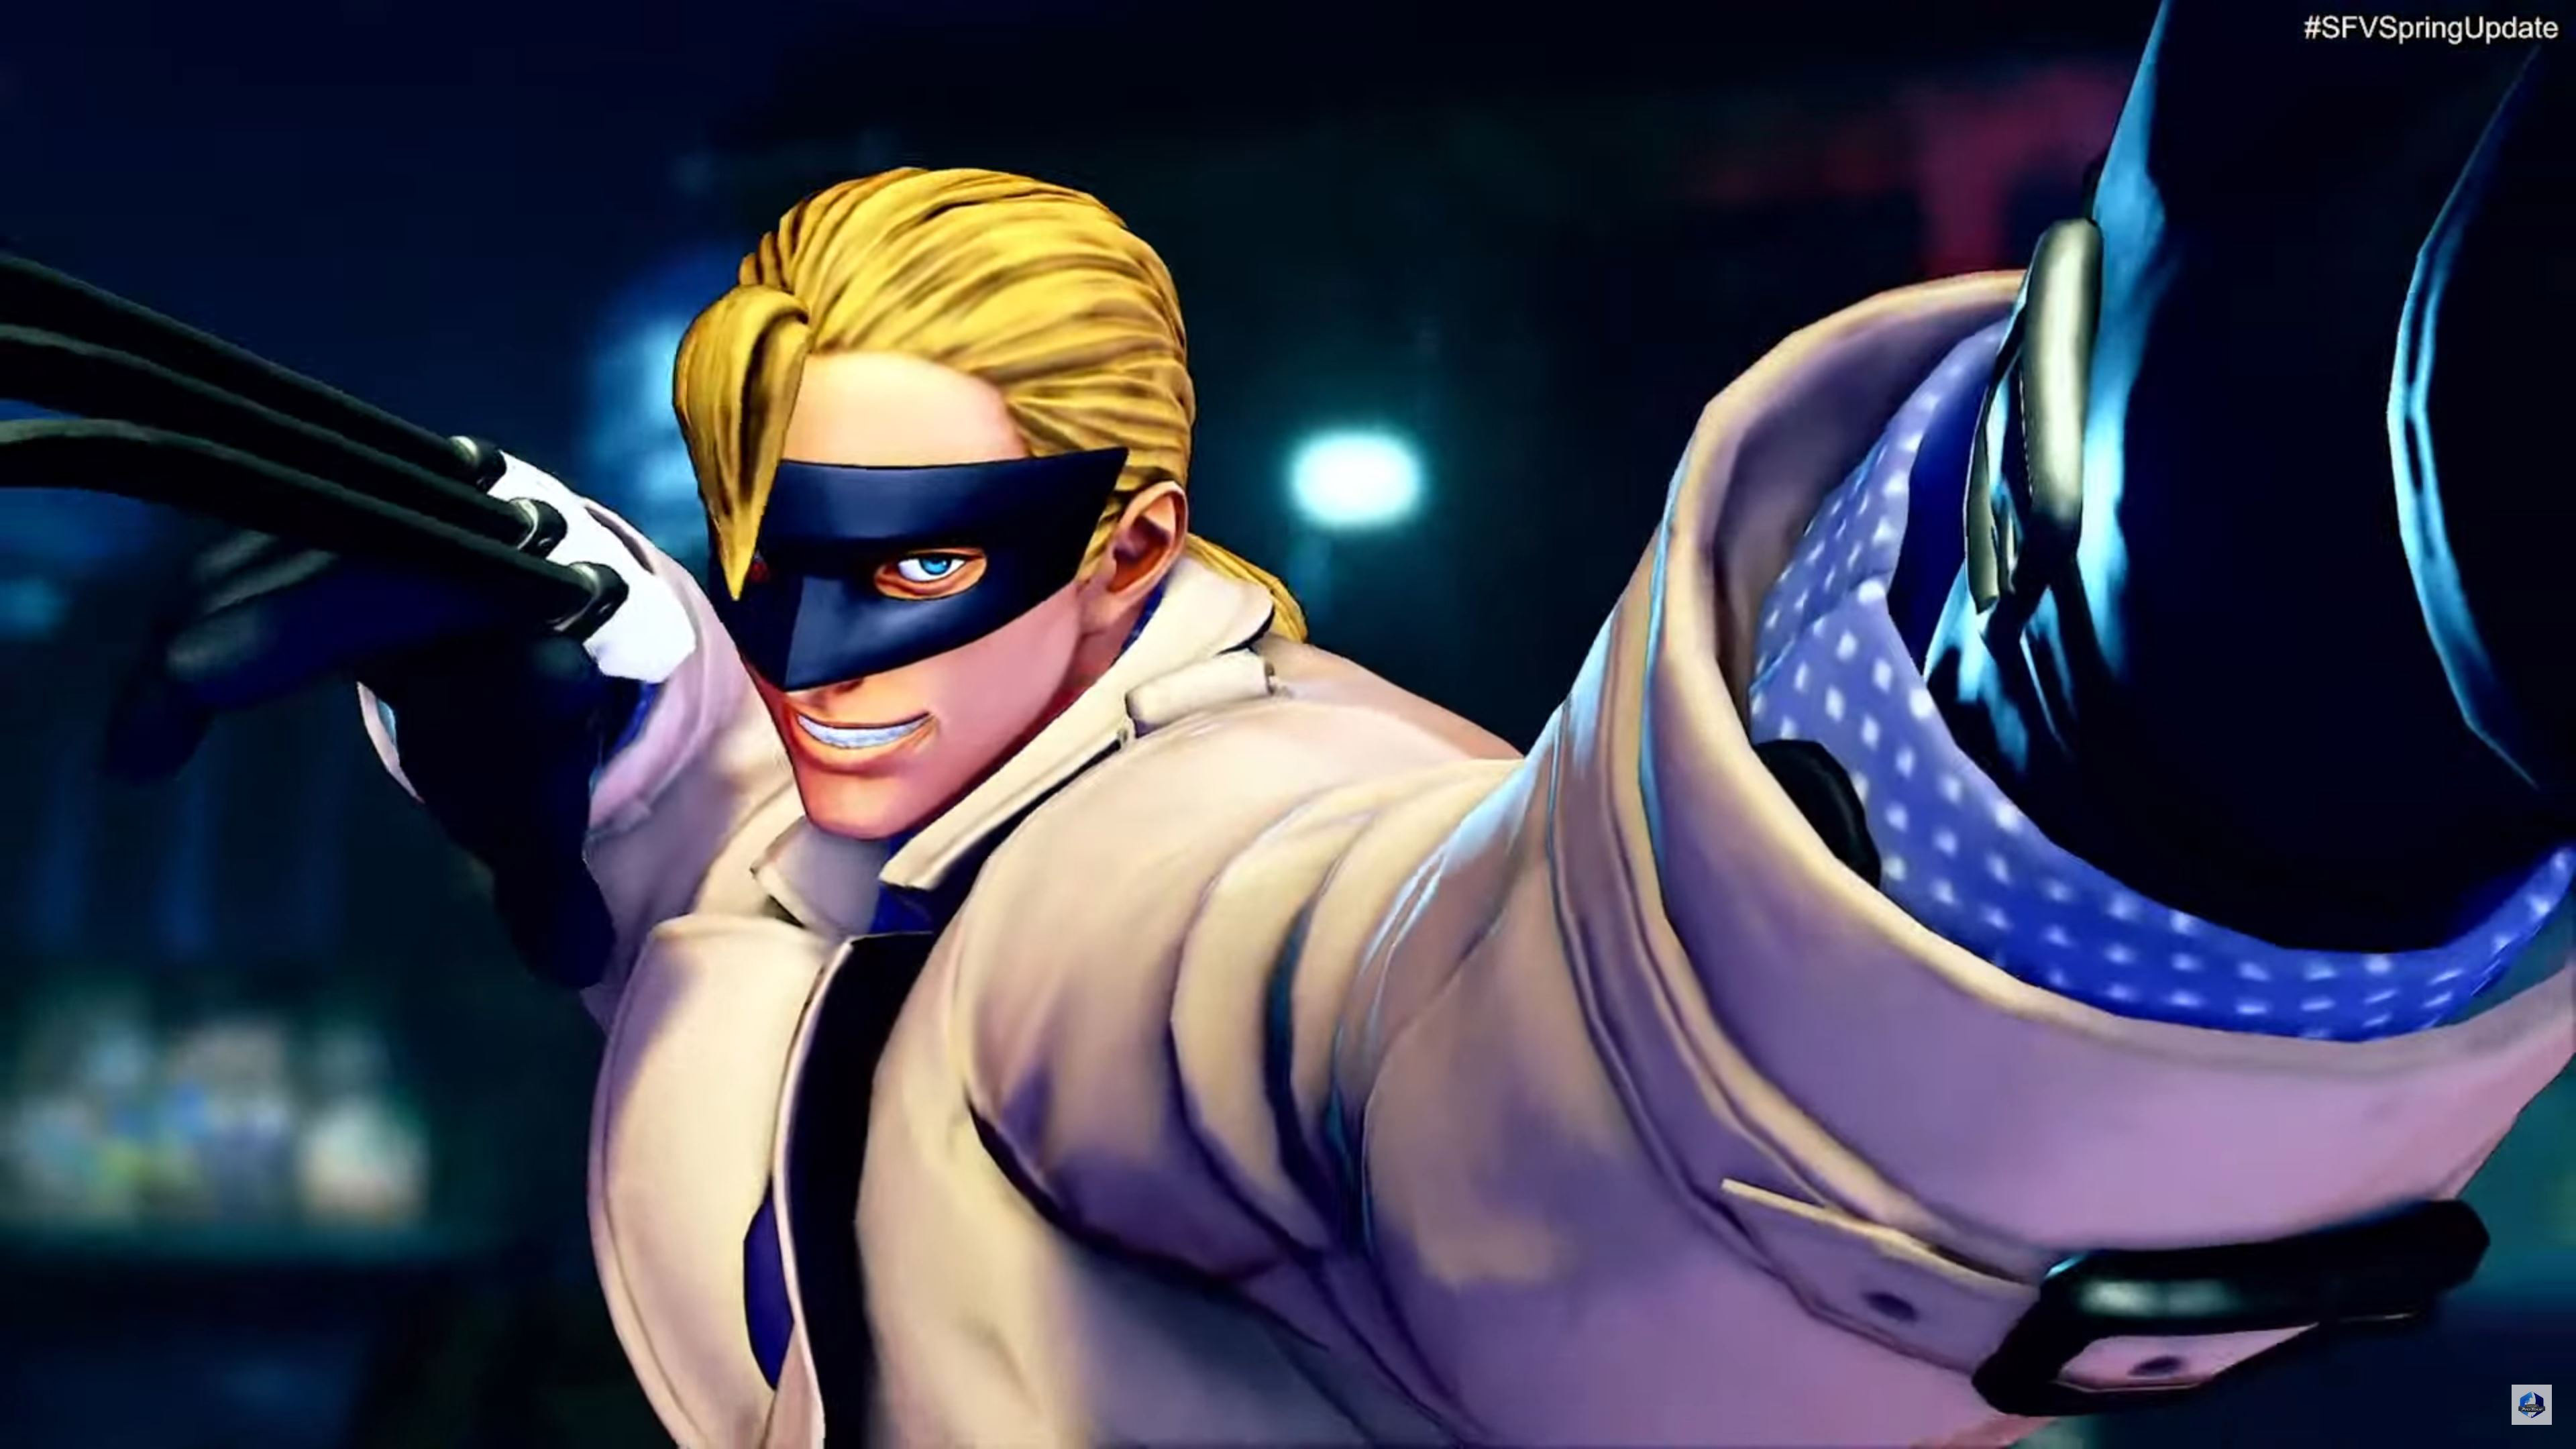 SF5 Pro Costumes  1 out of 6 image gallery